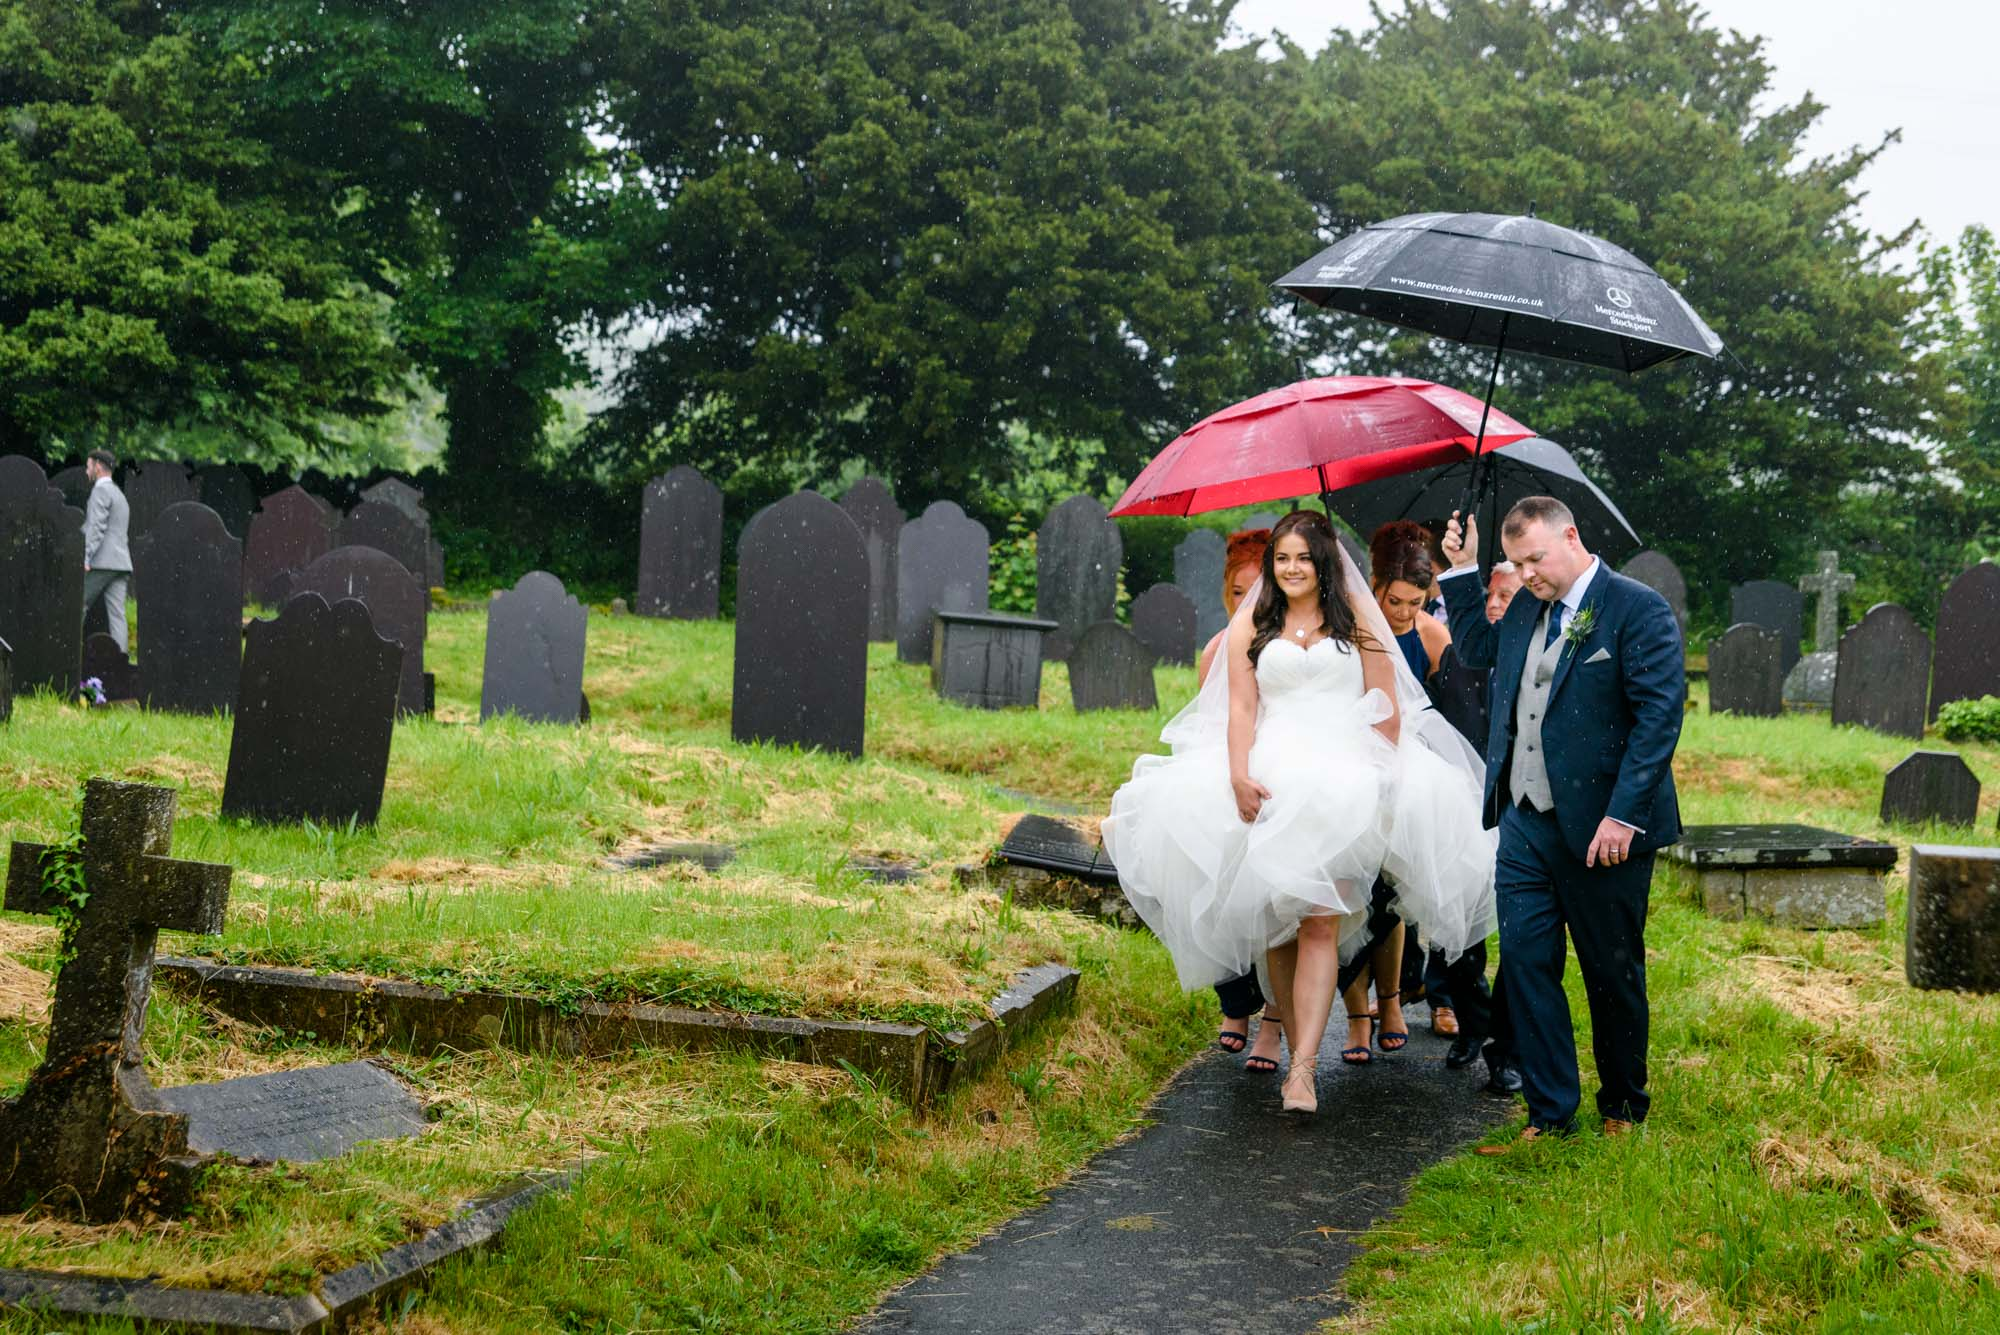 Bride in the rain at st mary's church in Llanfairpwllgwyngyll